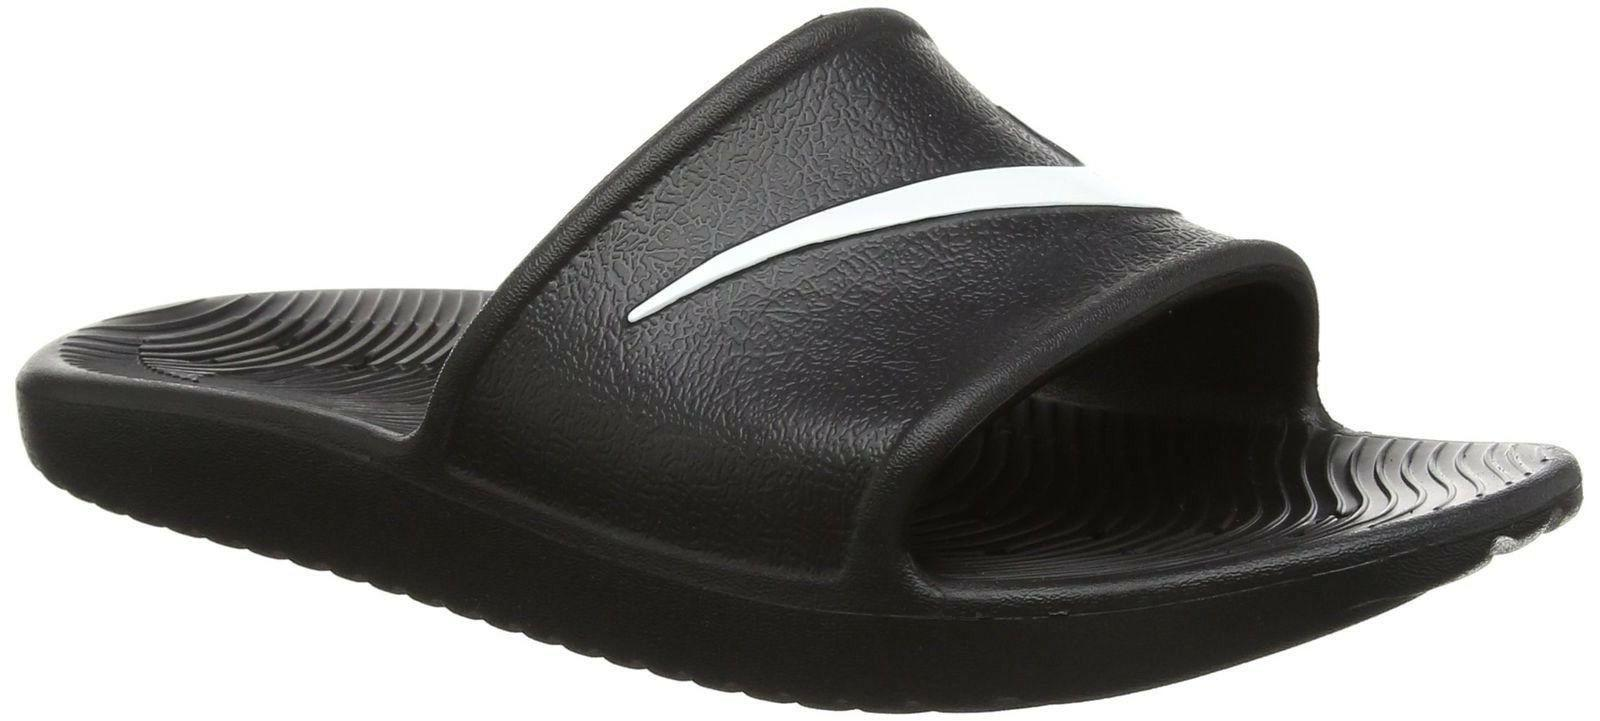 Men's Nike Kawa Slides Flip Flops Sandals Pool Slippers Beac